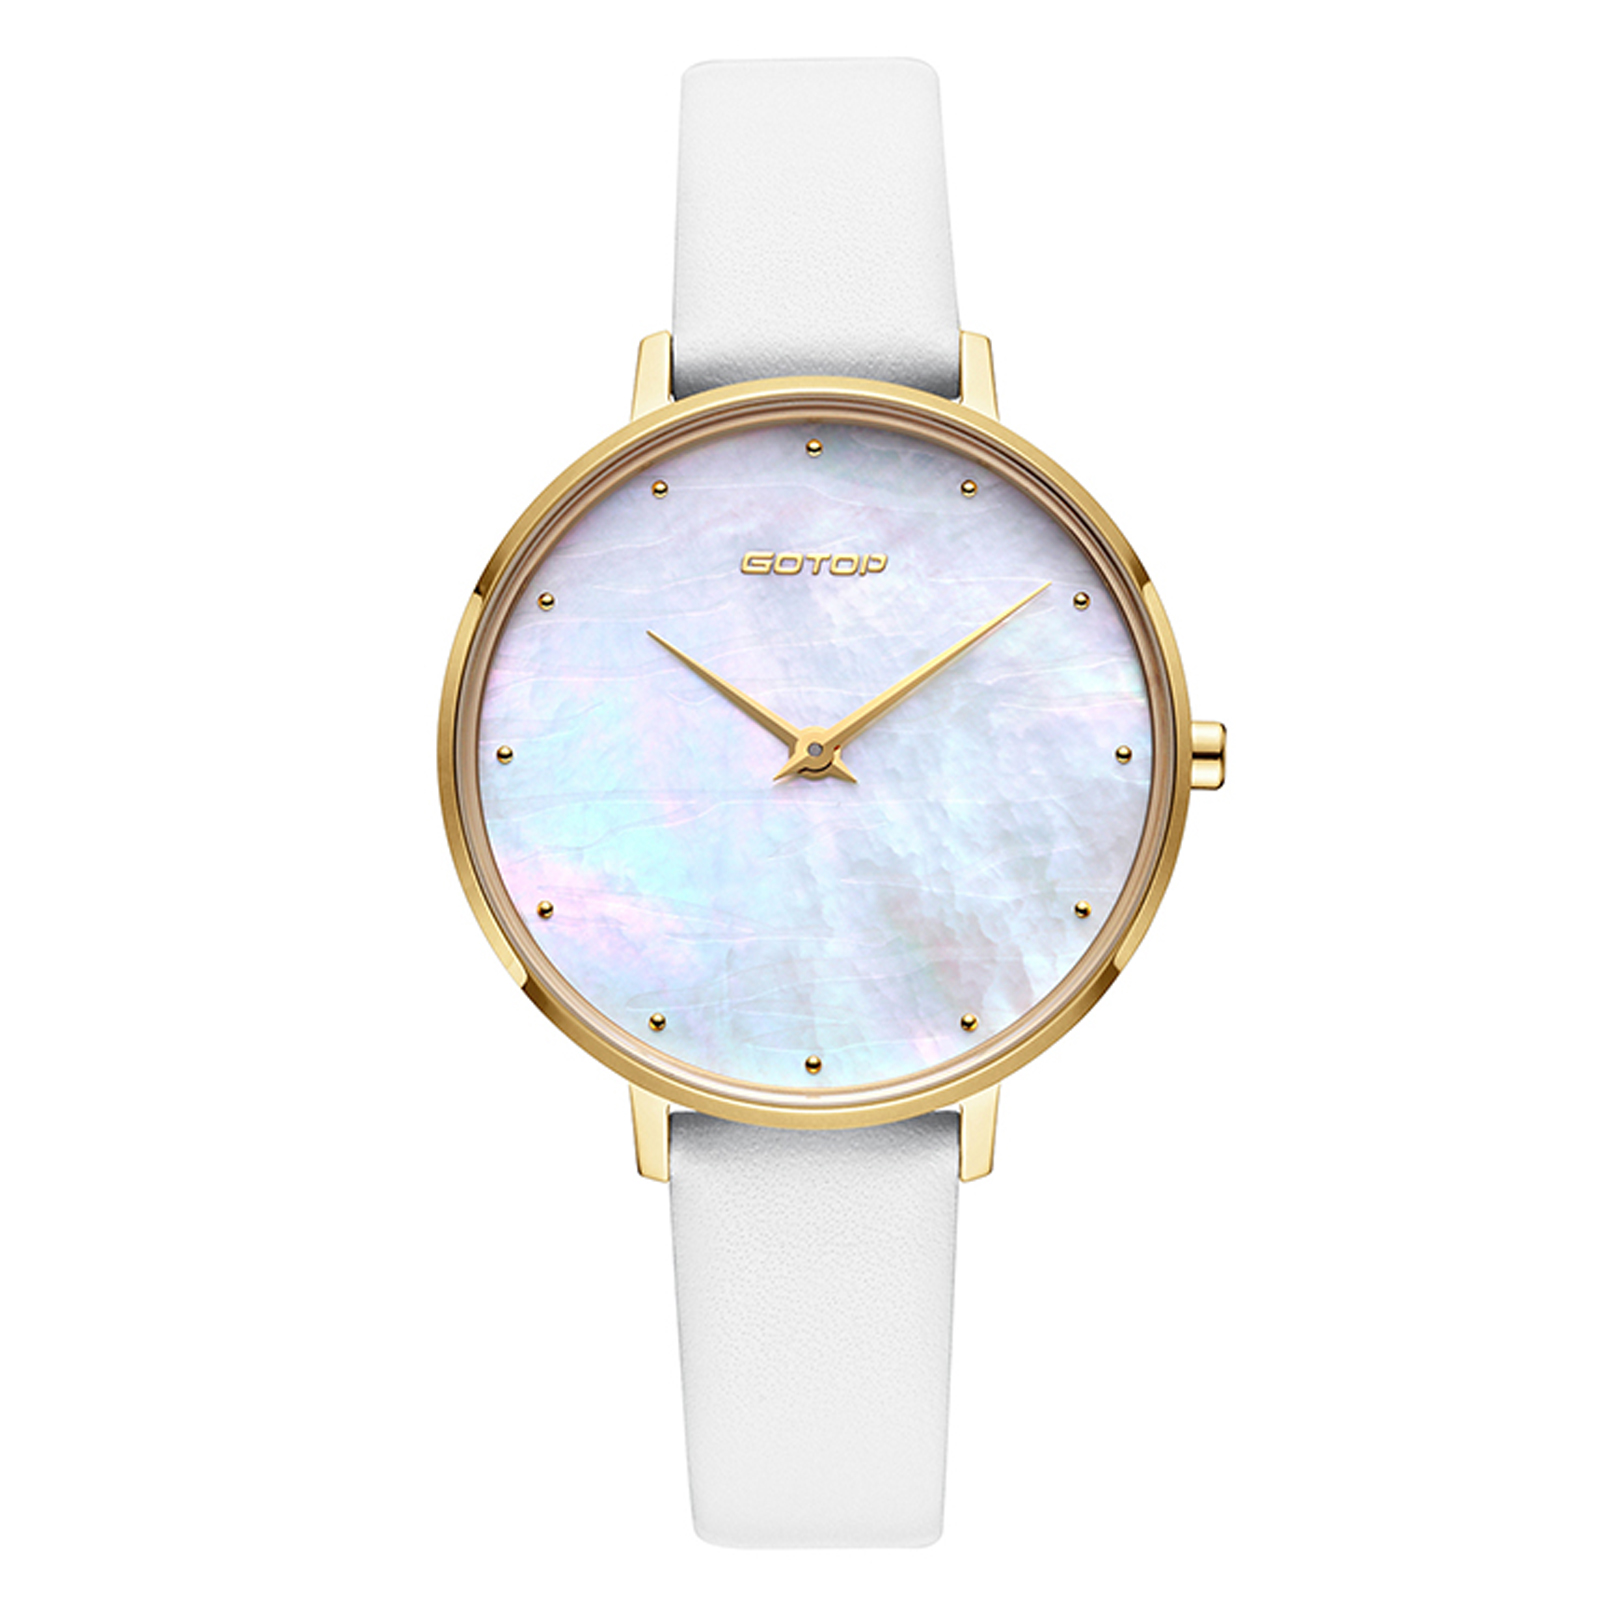 Gold And White Women's Watch With Mother Of Pearl Dial